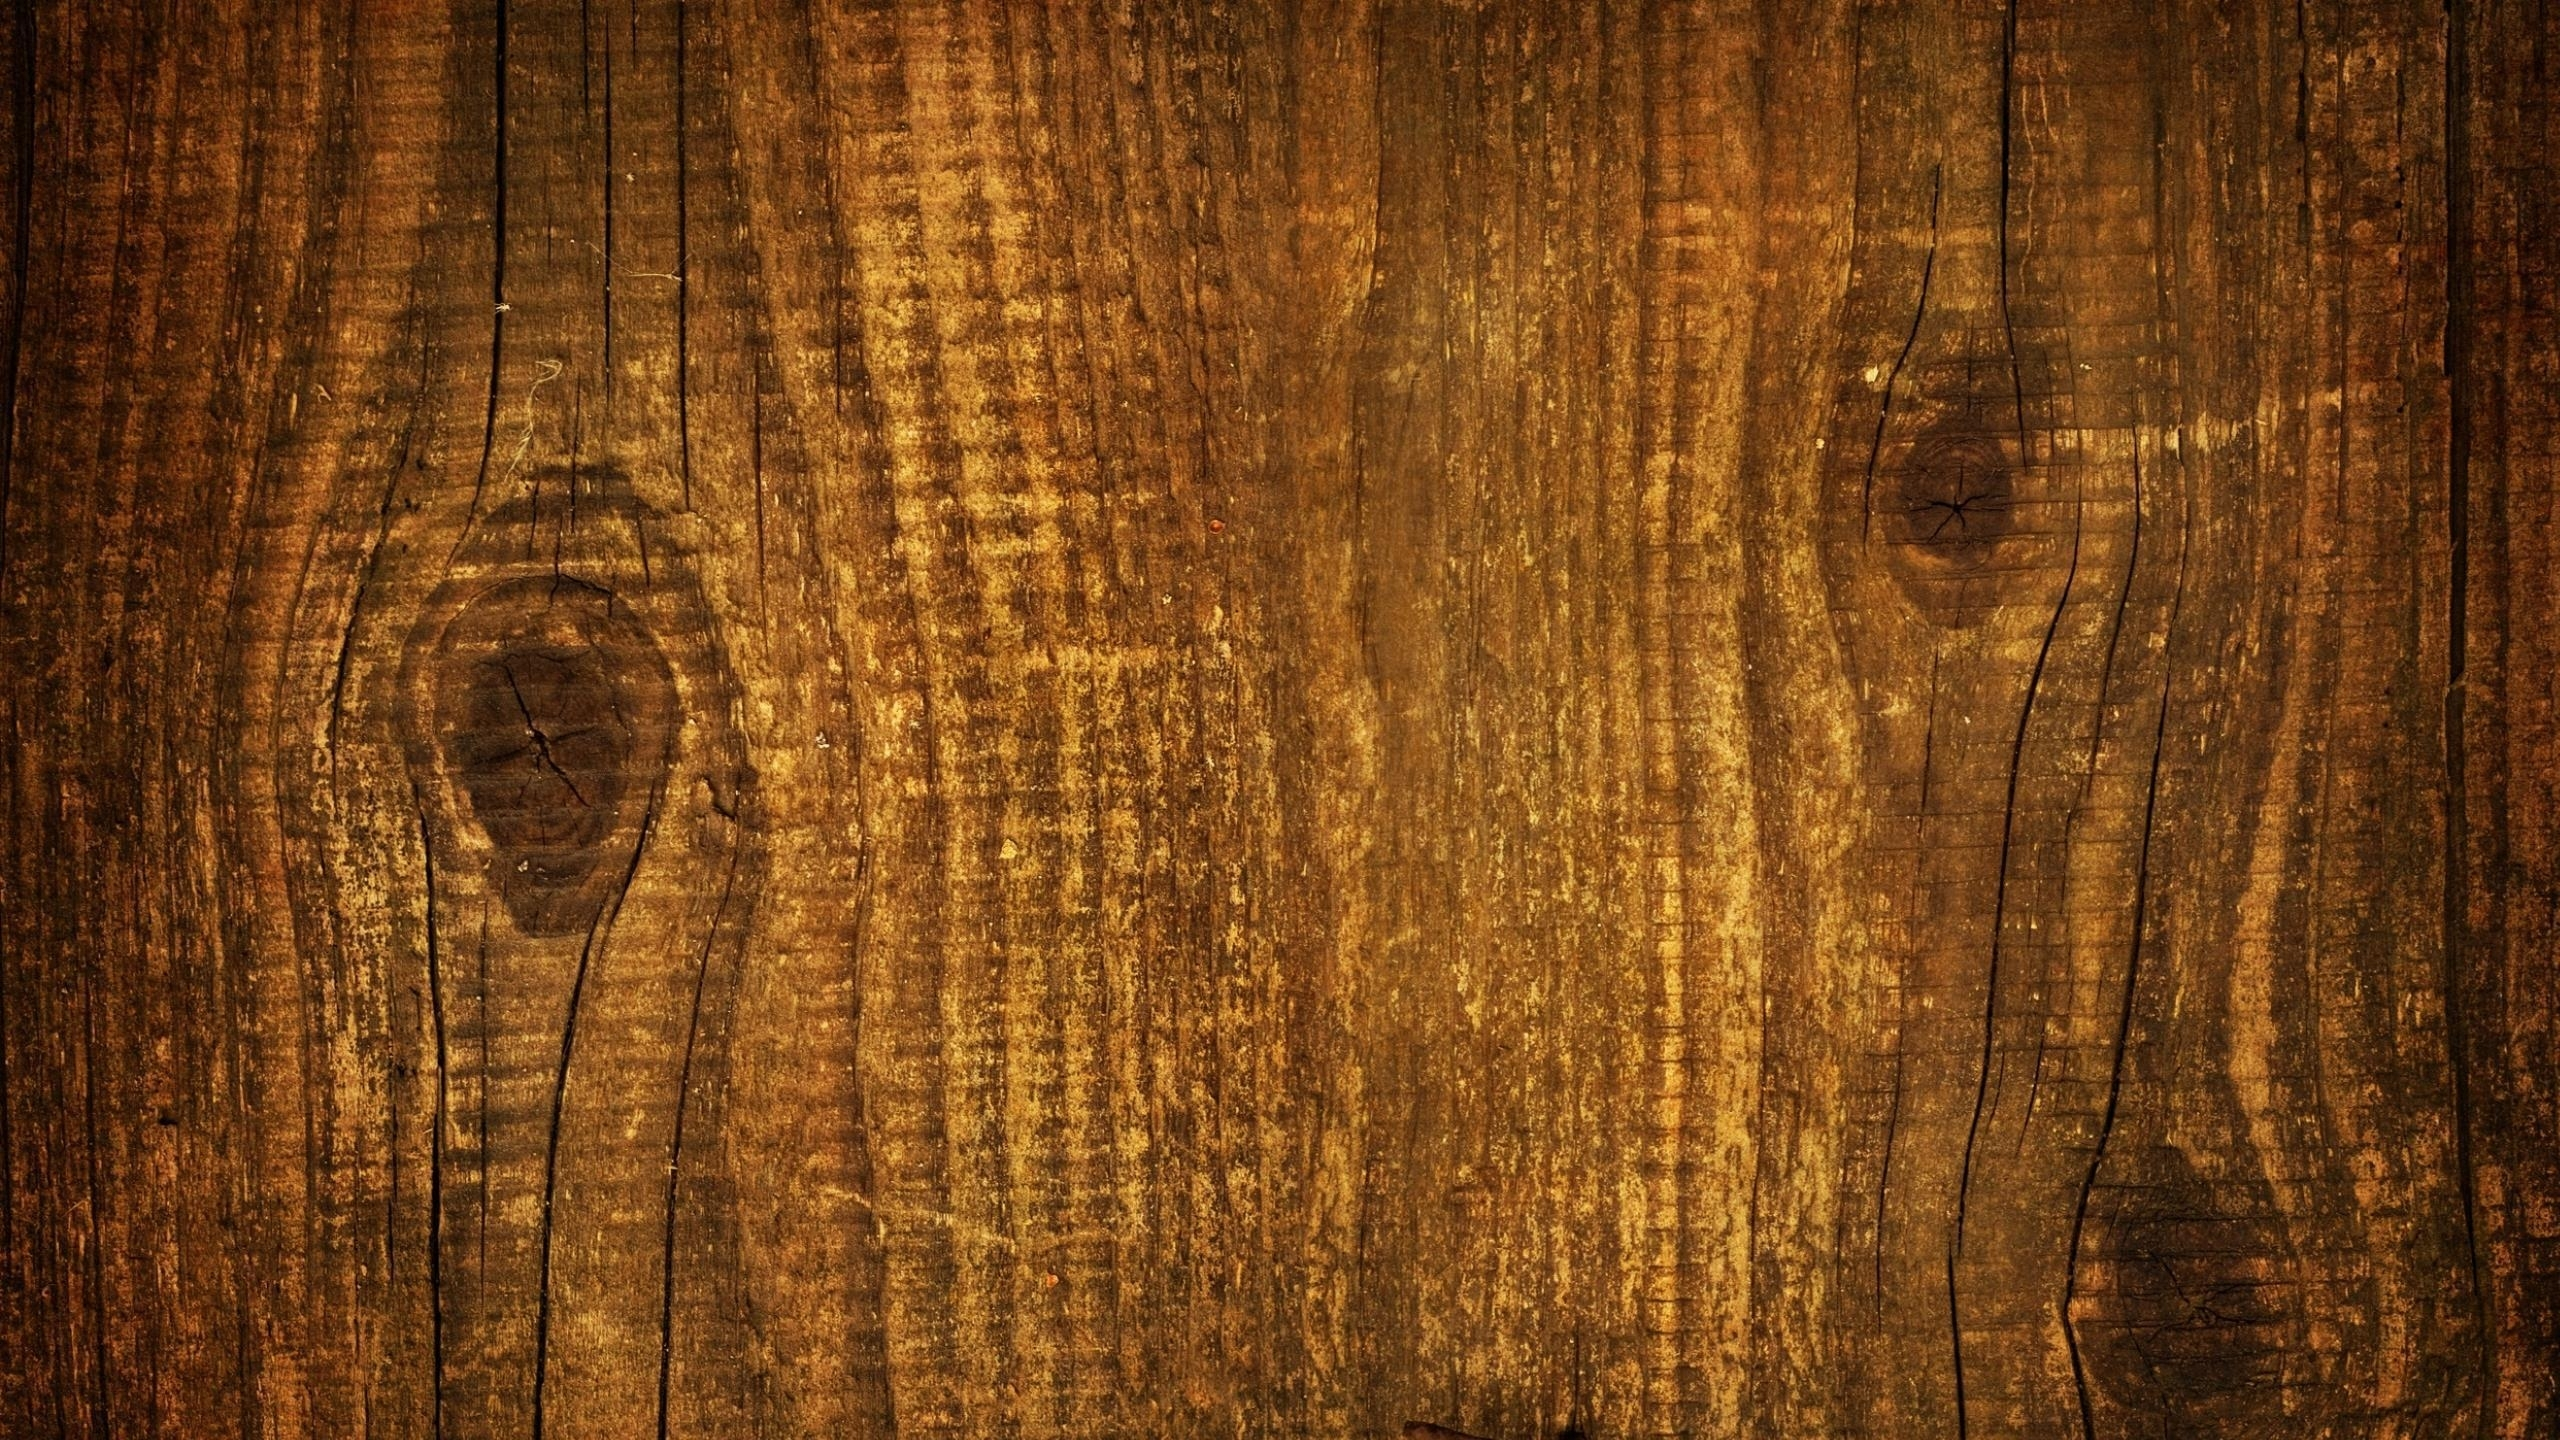 wood grain texture hd desktop wallpaper : widescreen : high